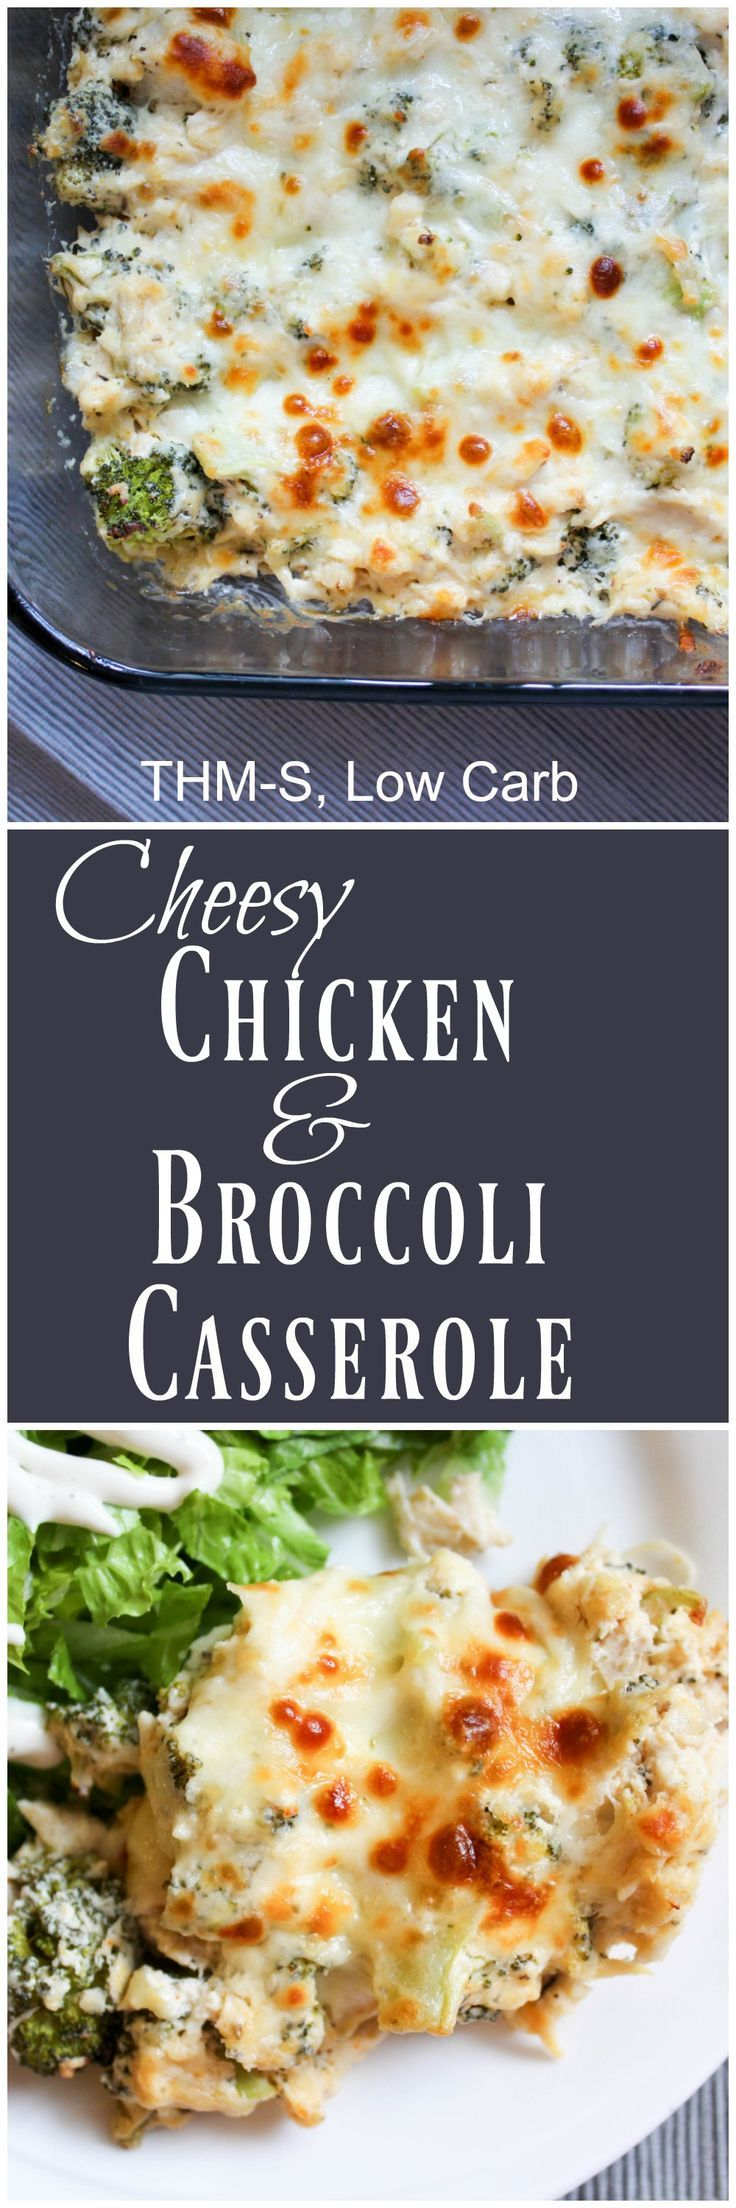 Blue apron low carb - Cheesy Chicken And Broccoli Casserole Thm S Low Carb